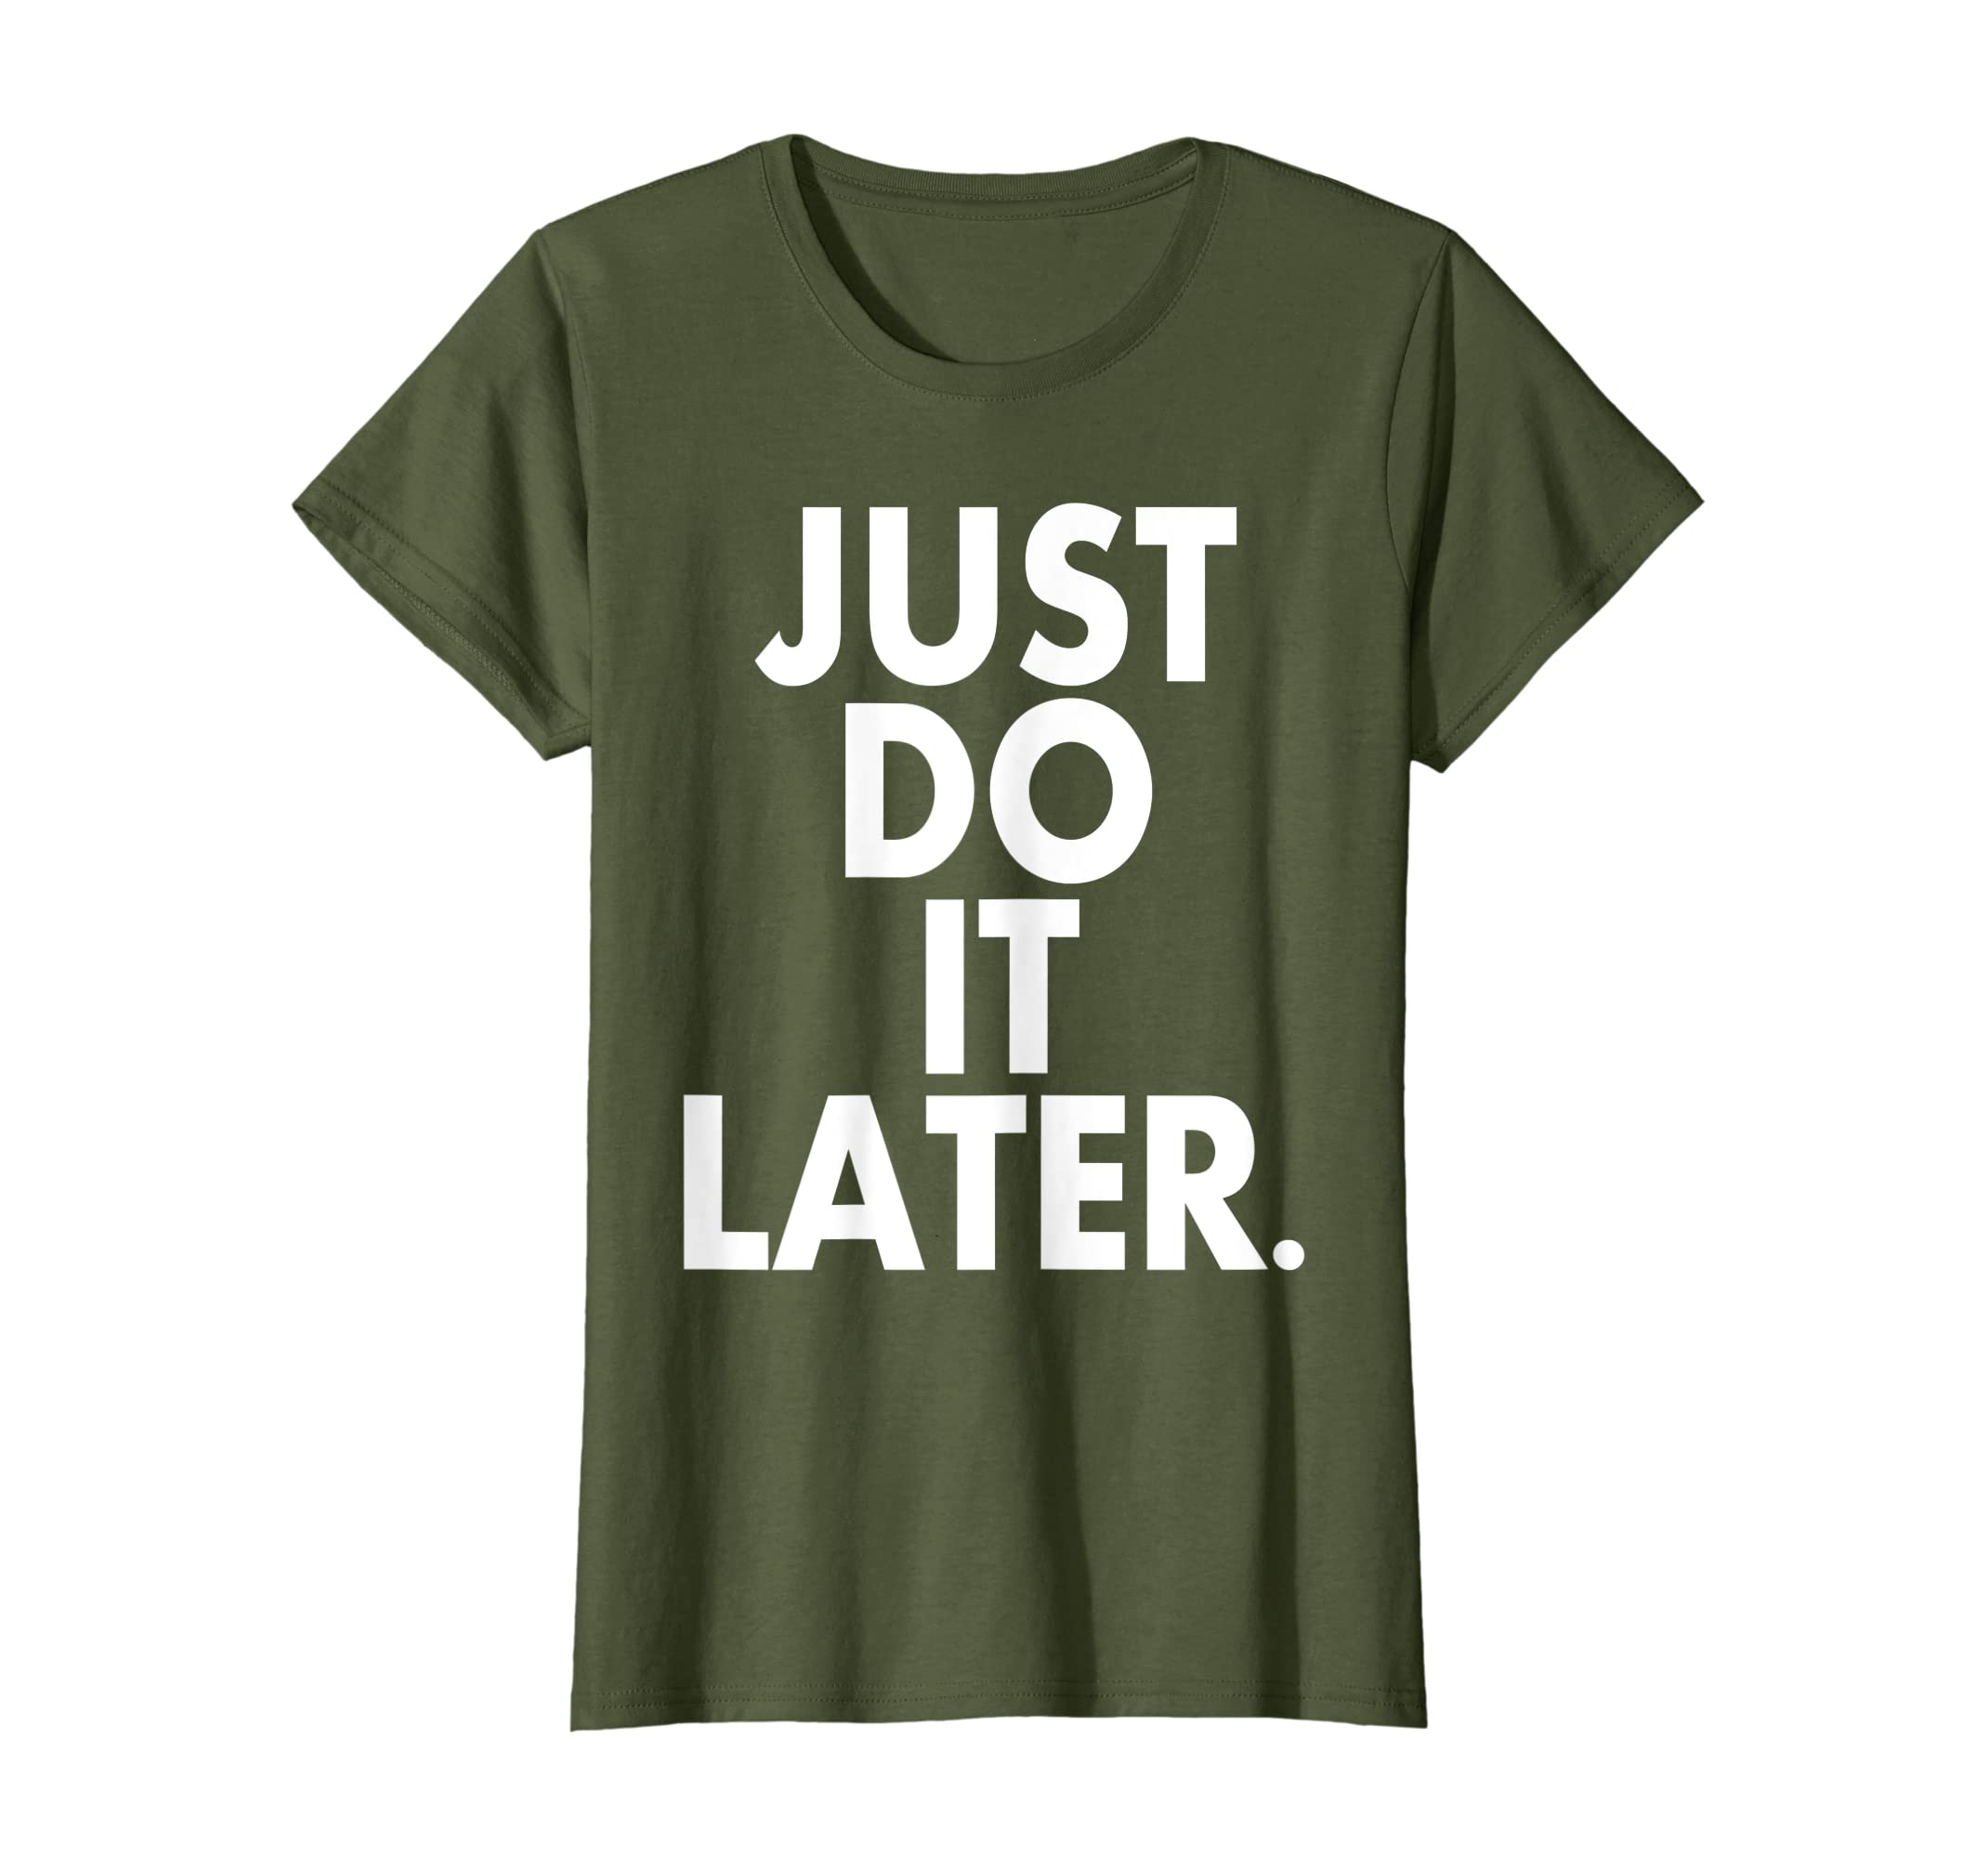 1bf0ca0b Amazon.com: Just do it later t-shirt: Clothing